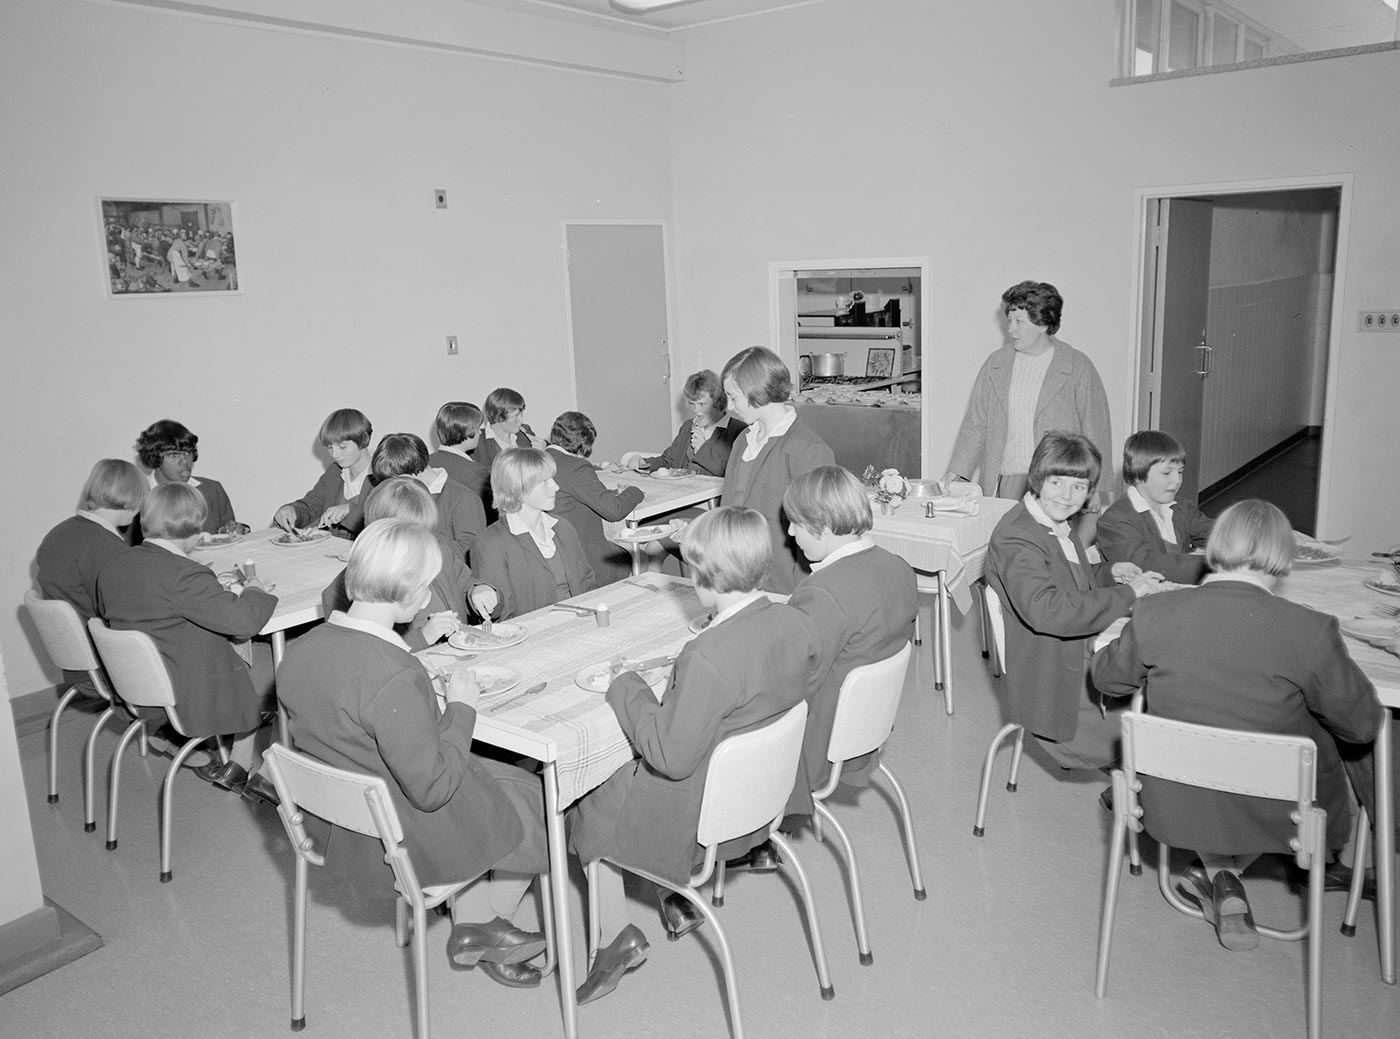 Black and white photo showing groups of teenage girls seated at various sized tables. The girls wear a uniform and are being supervised by a woman who stands at the centre of the image. - click to view larger image